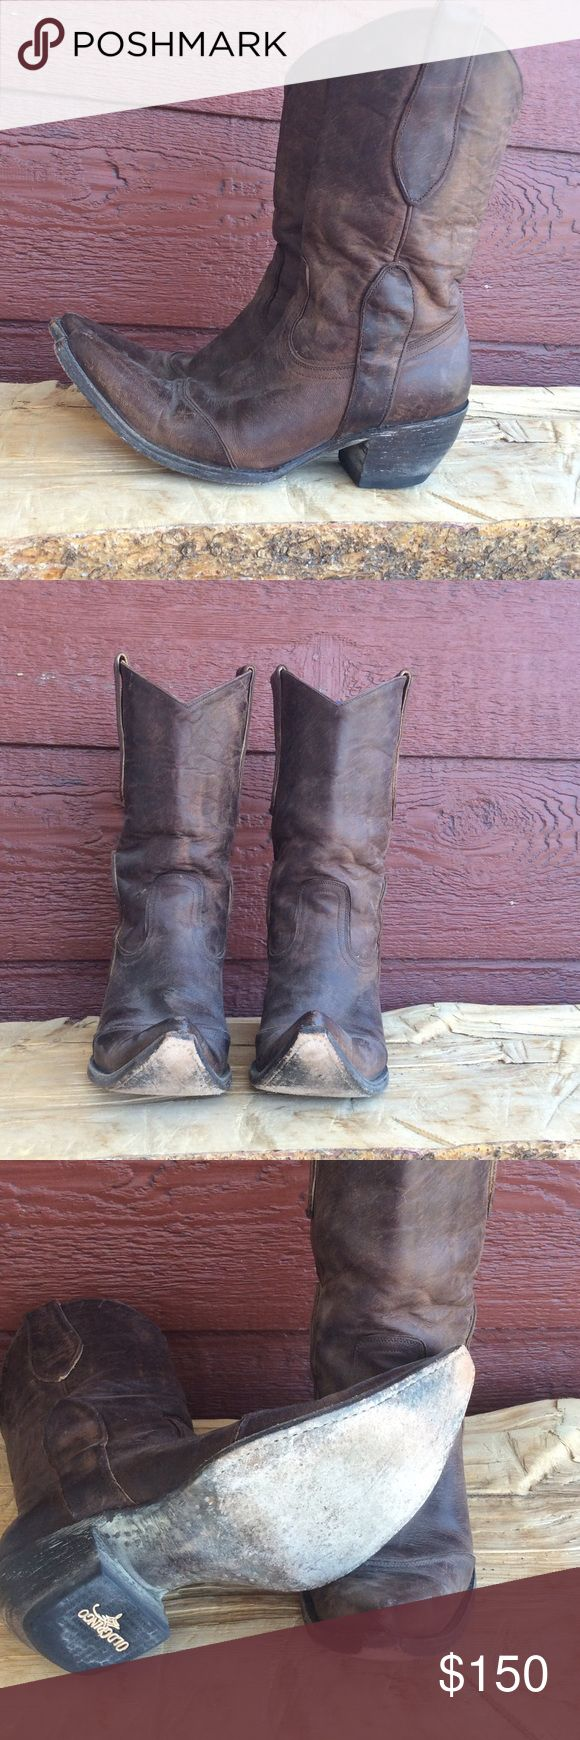 Old gringo brown cowboy boots Old gringo brown cowgirl western boots in great condition. These are genuine leather with leather soles as well. Old Gringo Shoes Heeled Boots